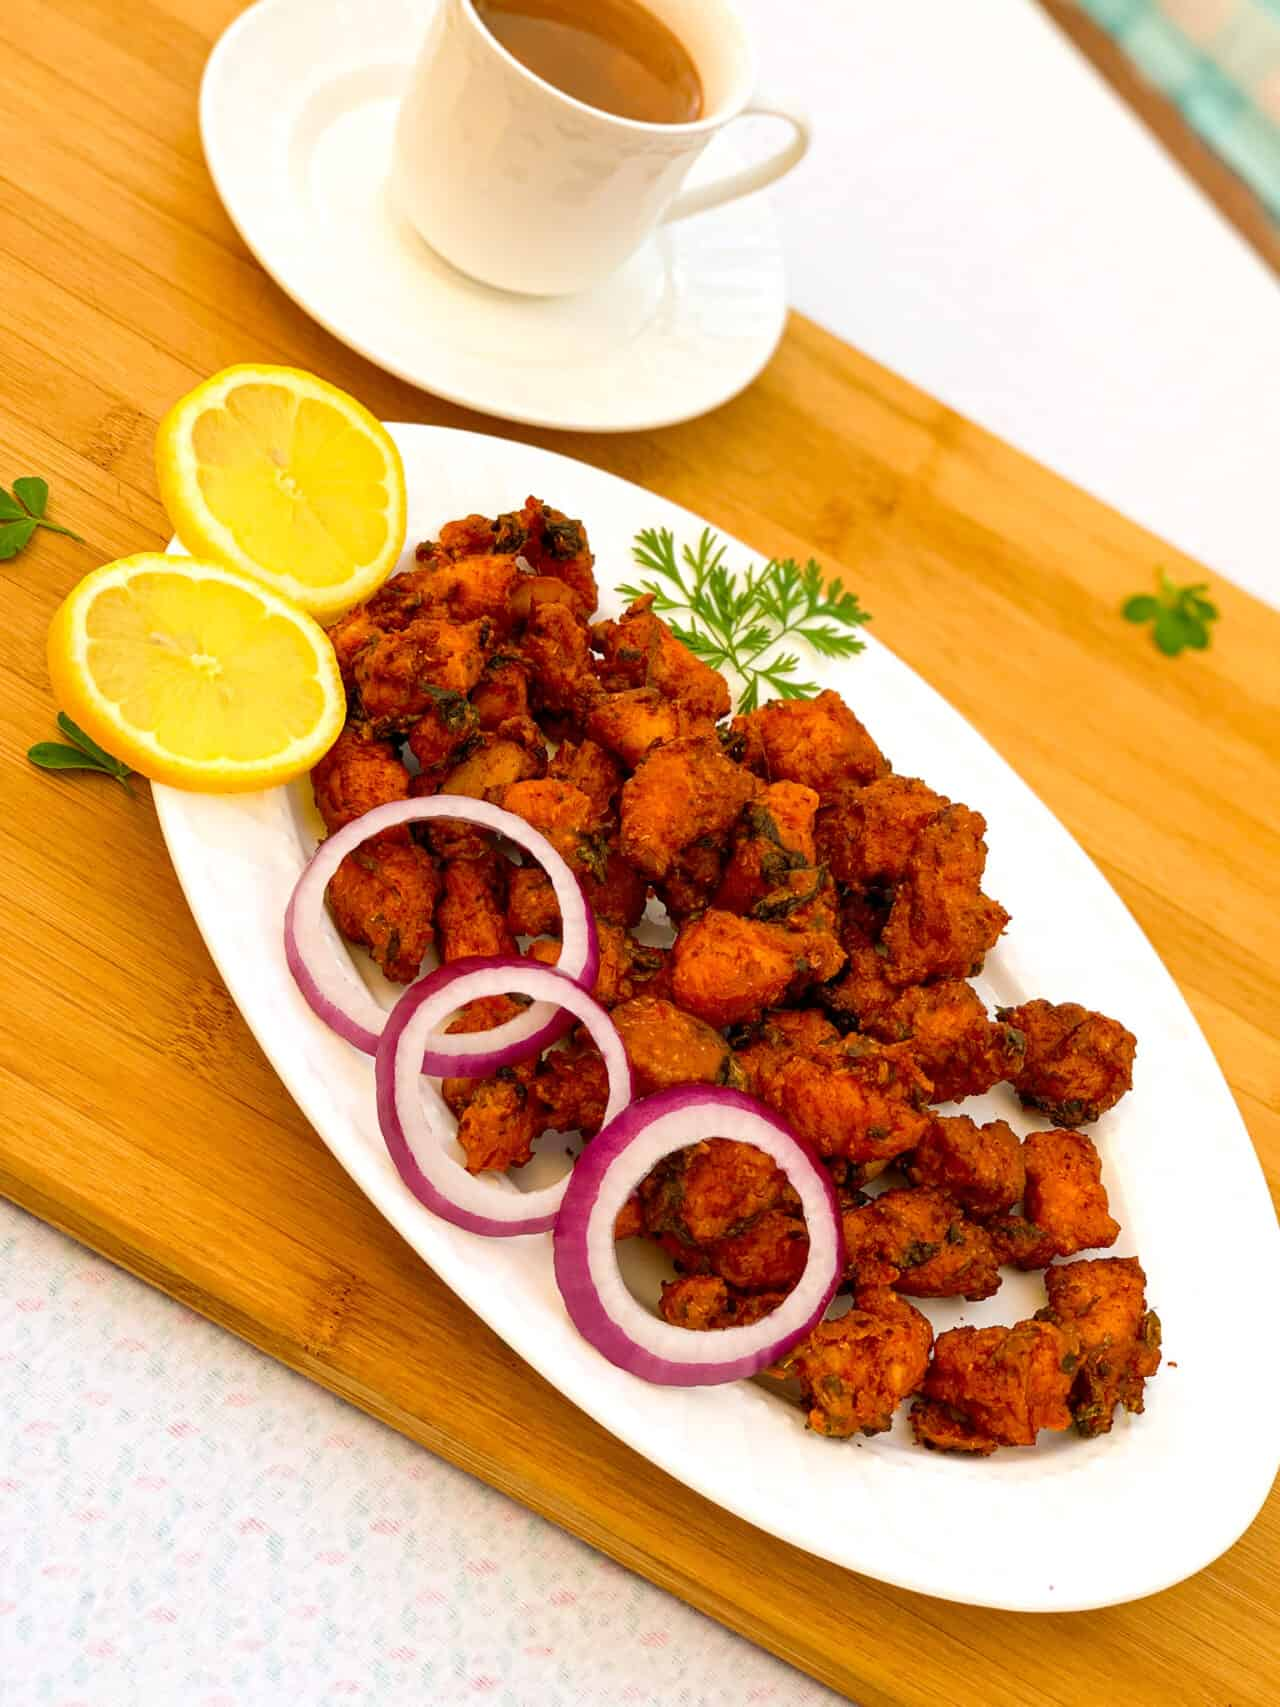 Plate of chicken fritters with lemon and onion rings with chai or tea in the background